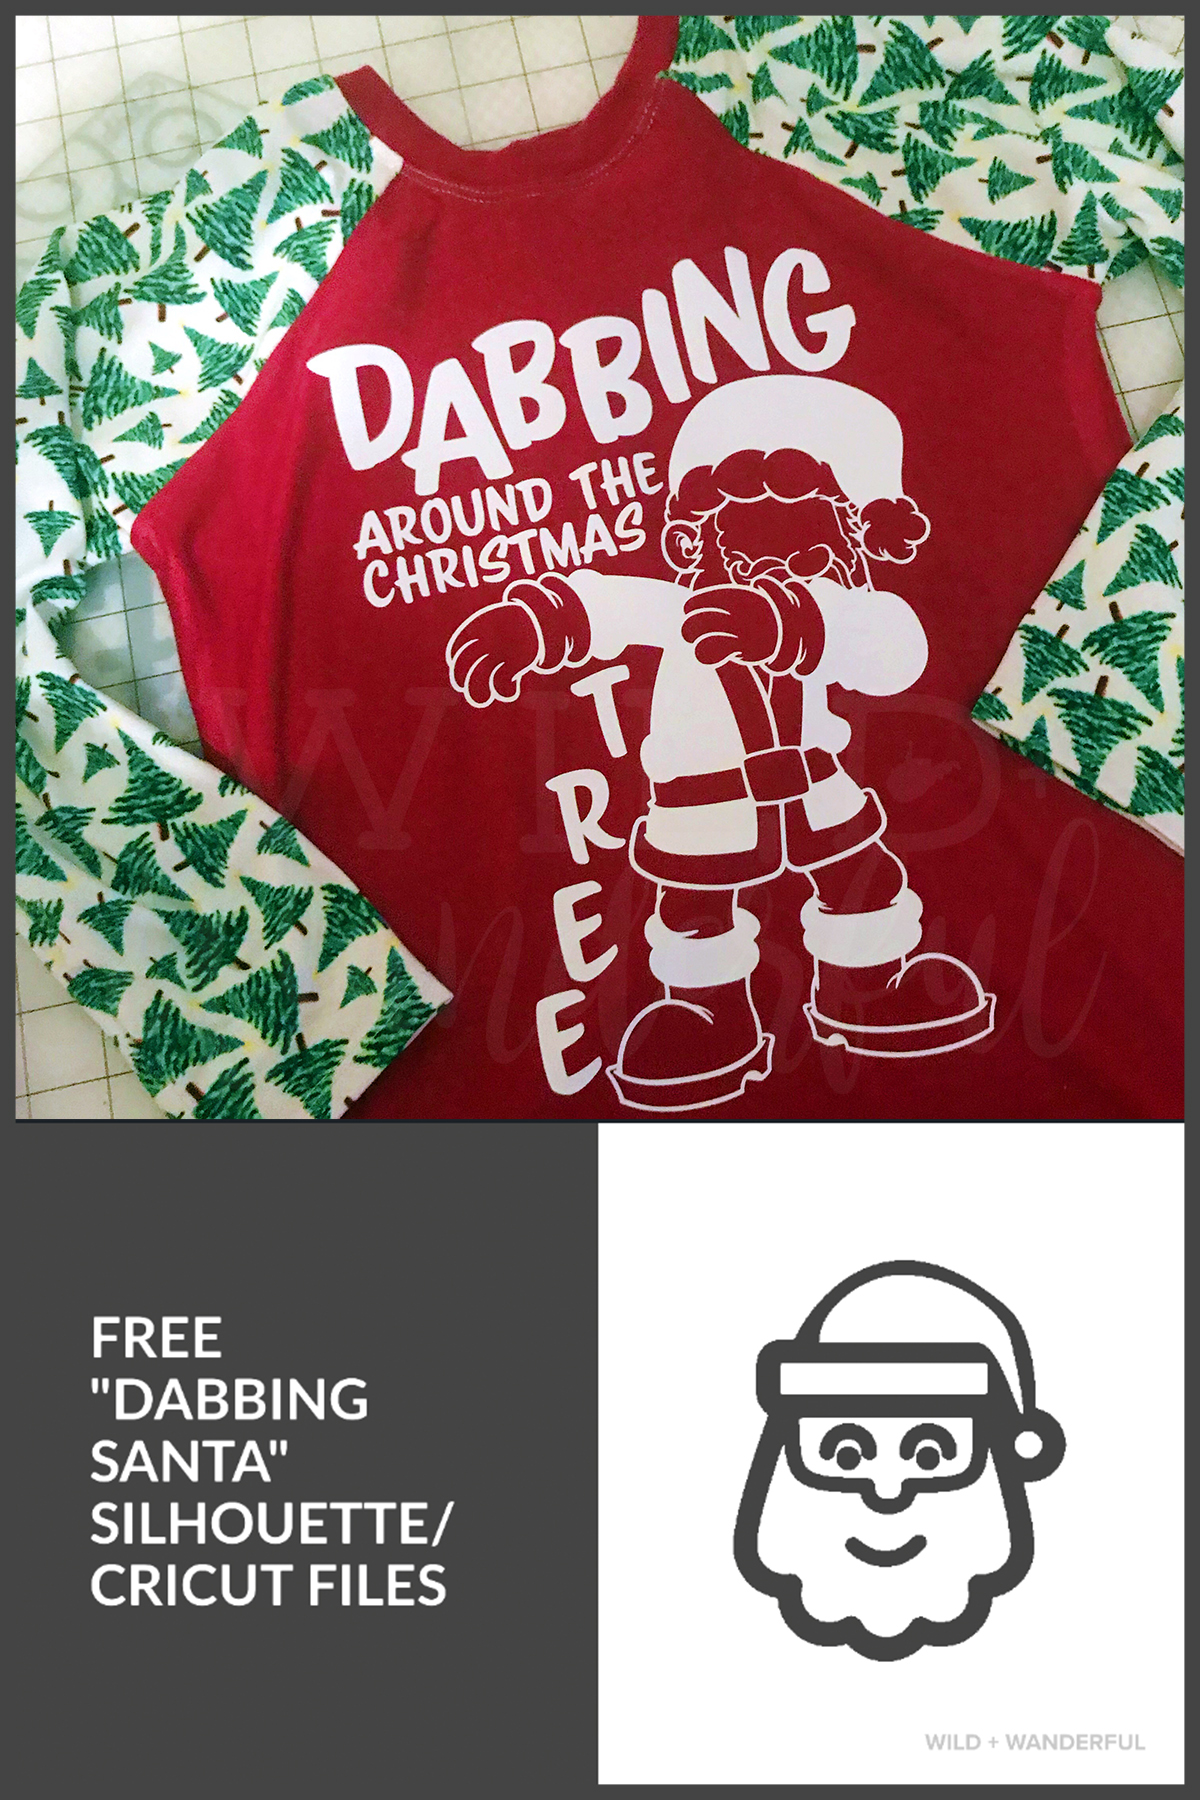 04a5483d Dabbing Around the Christmas Tree :: Free Silhouette + Cricut Cut Files!